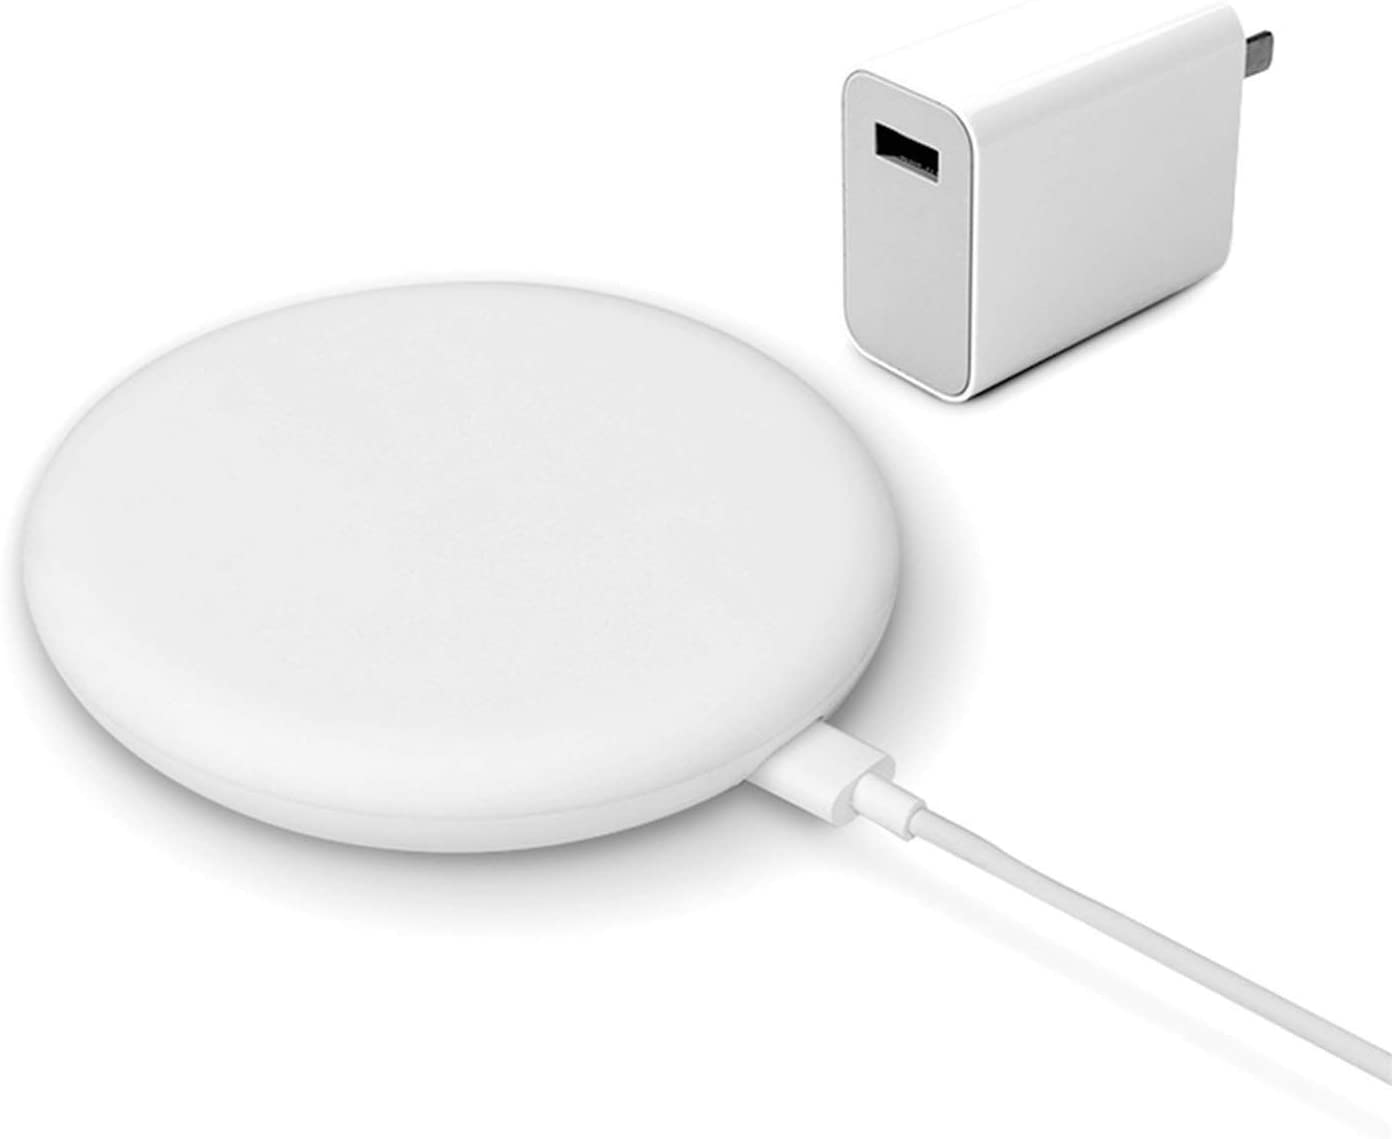 Wireless Qi Charger - Xiaomi Mi Wireless Fast Charging Pad, White, 20W, Qi charger, 1A, Type-C